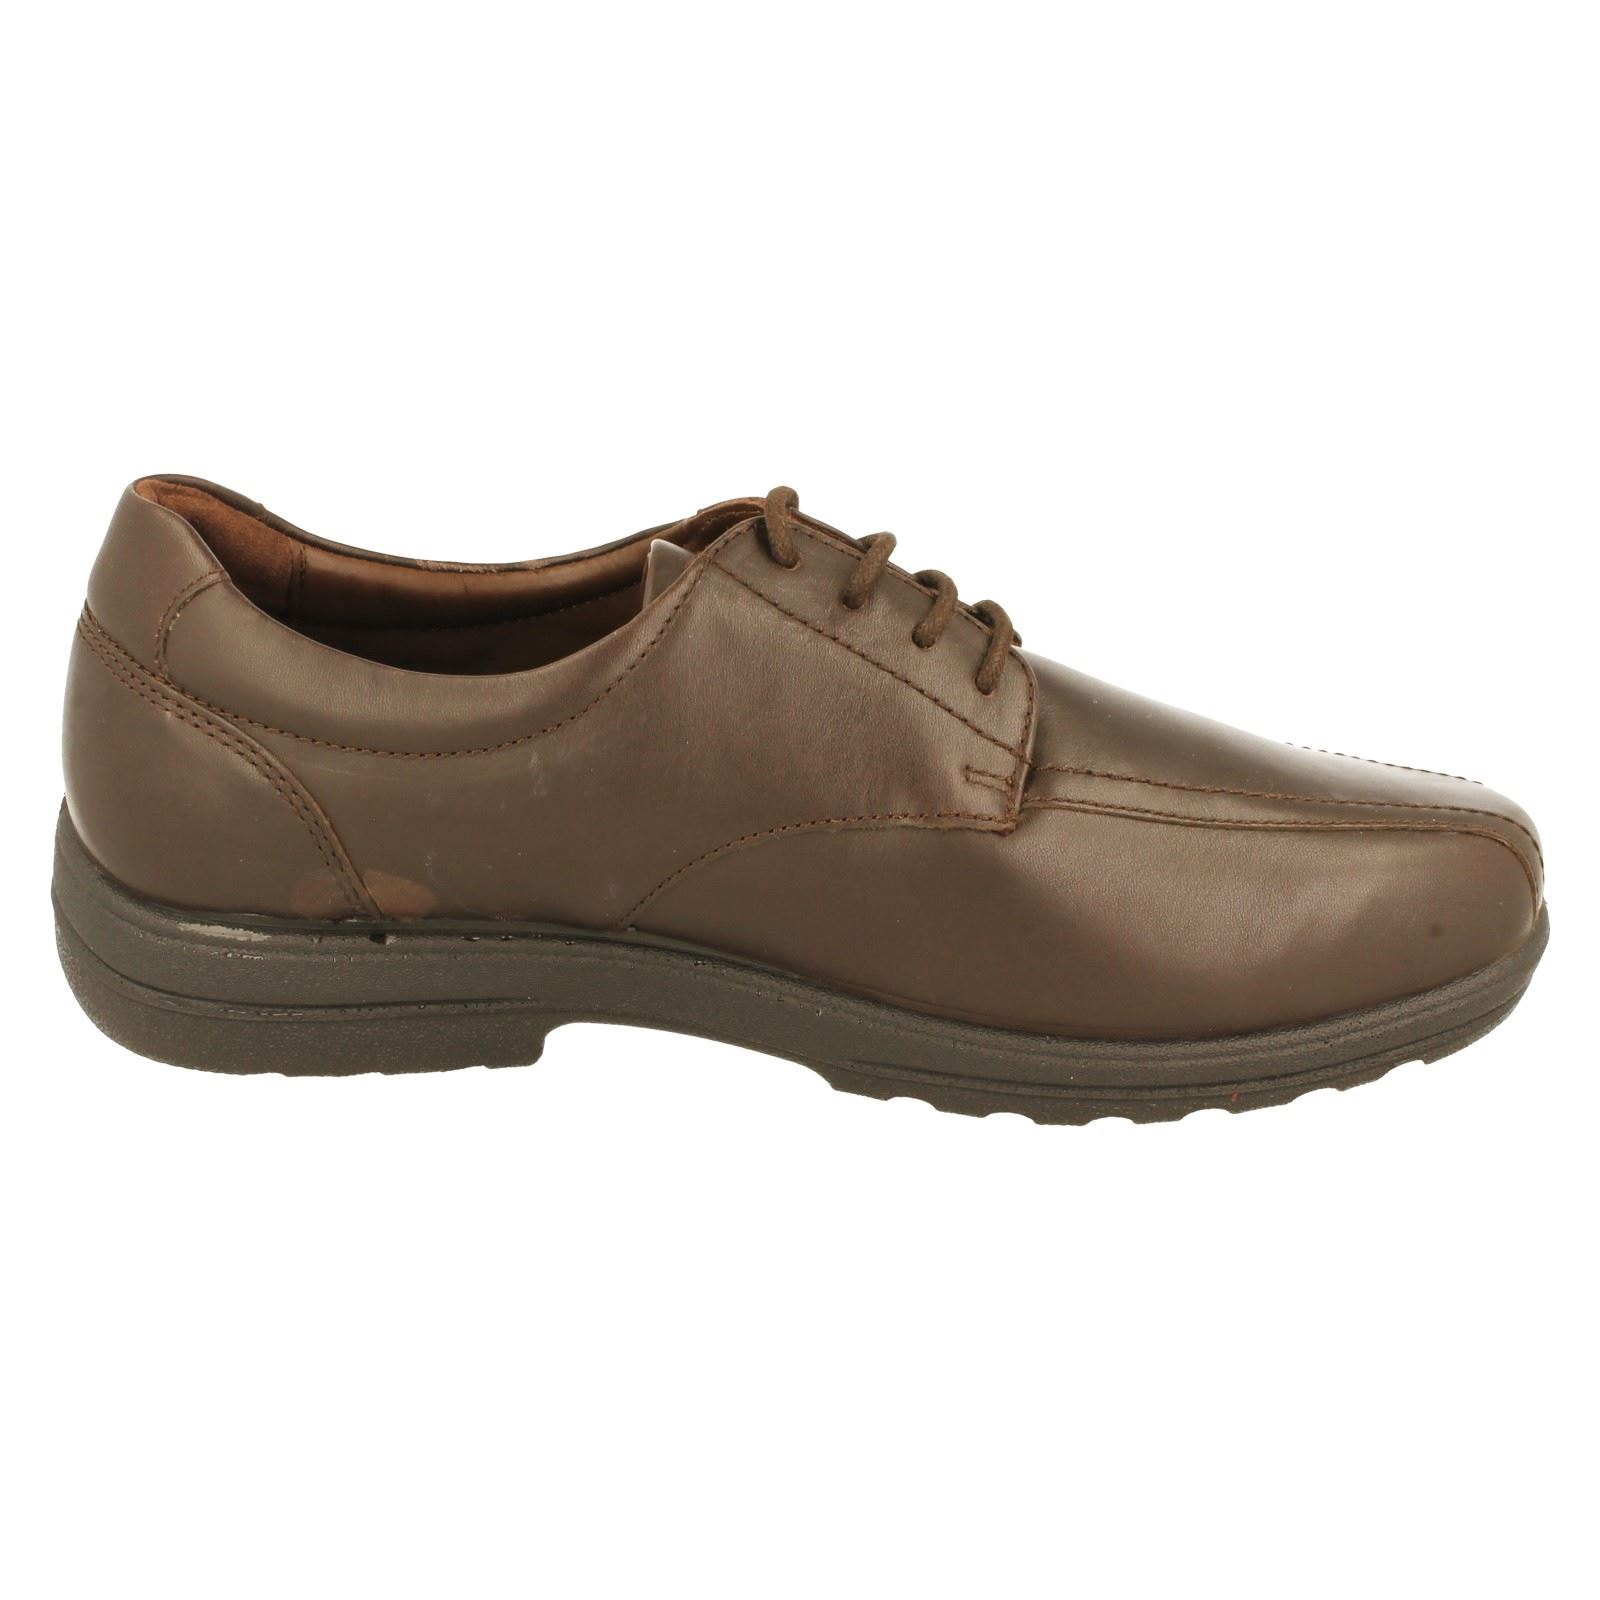 Padders   Herren Schuhes  H/K The Fit The H/K Style Dexter-W fecee7